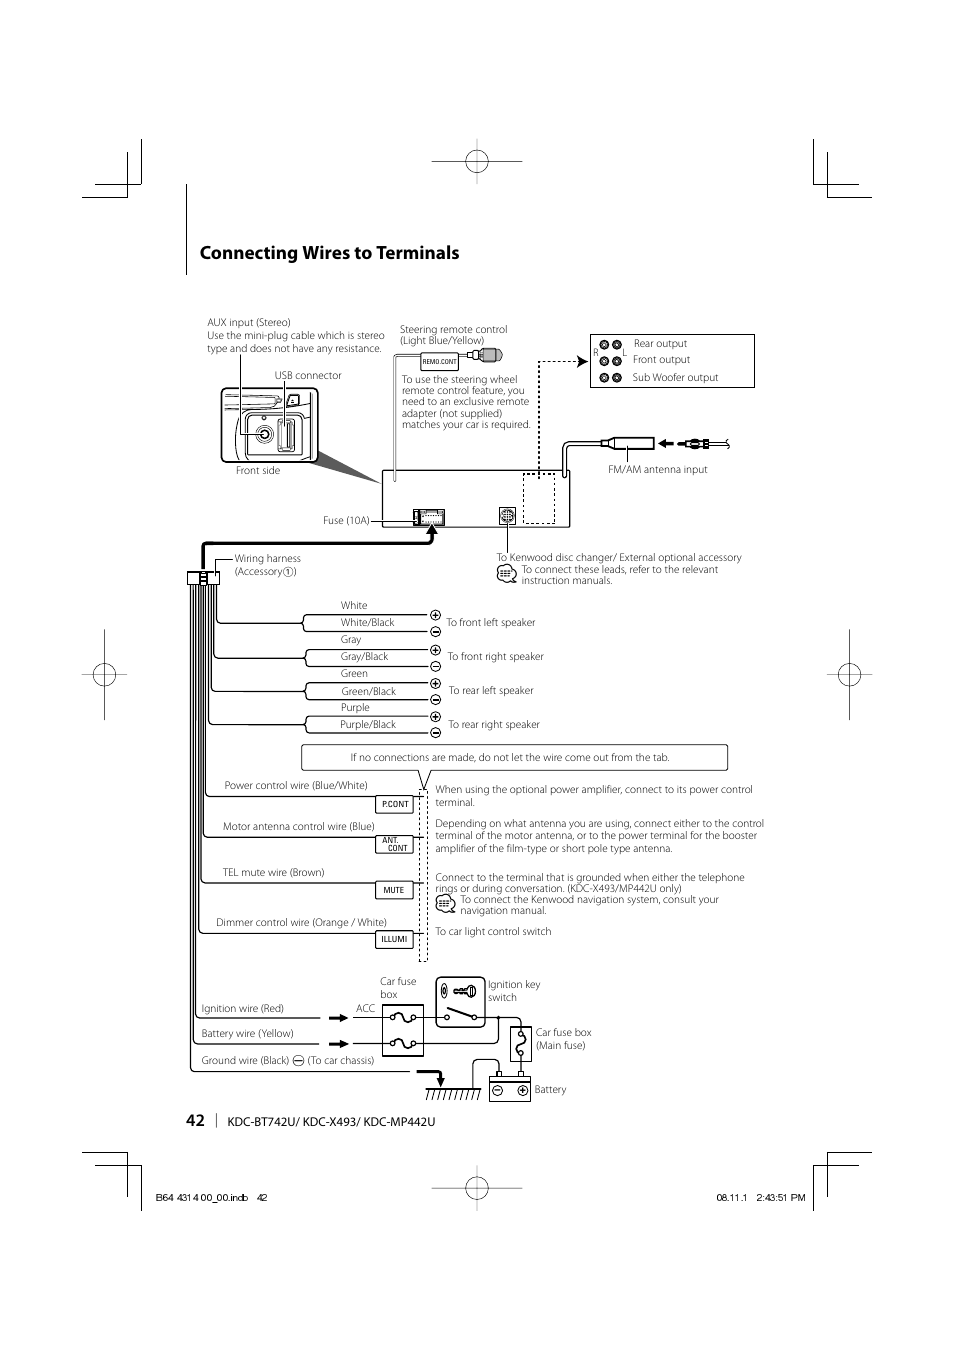 medium resolution of connecting wires to terminals kenwood kdc bt742u user manual schematic diagram connecting wires to terminals kenwood